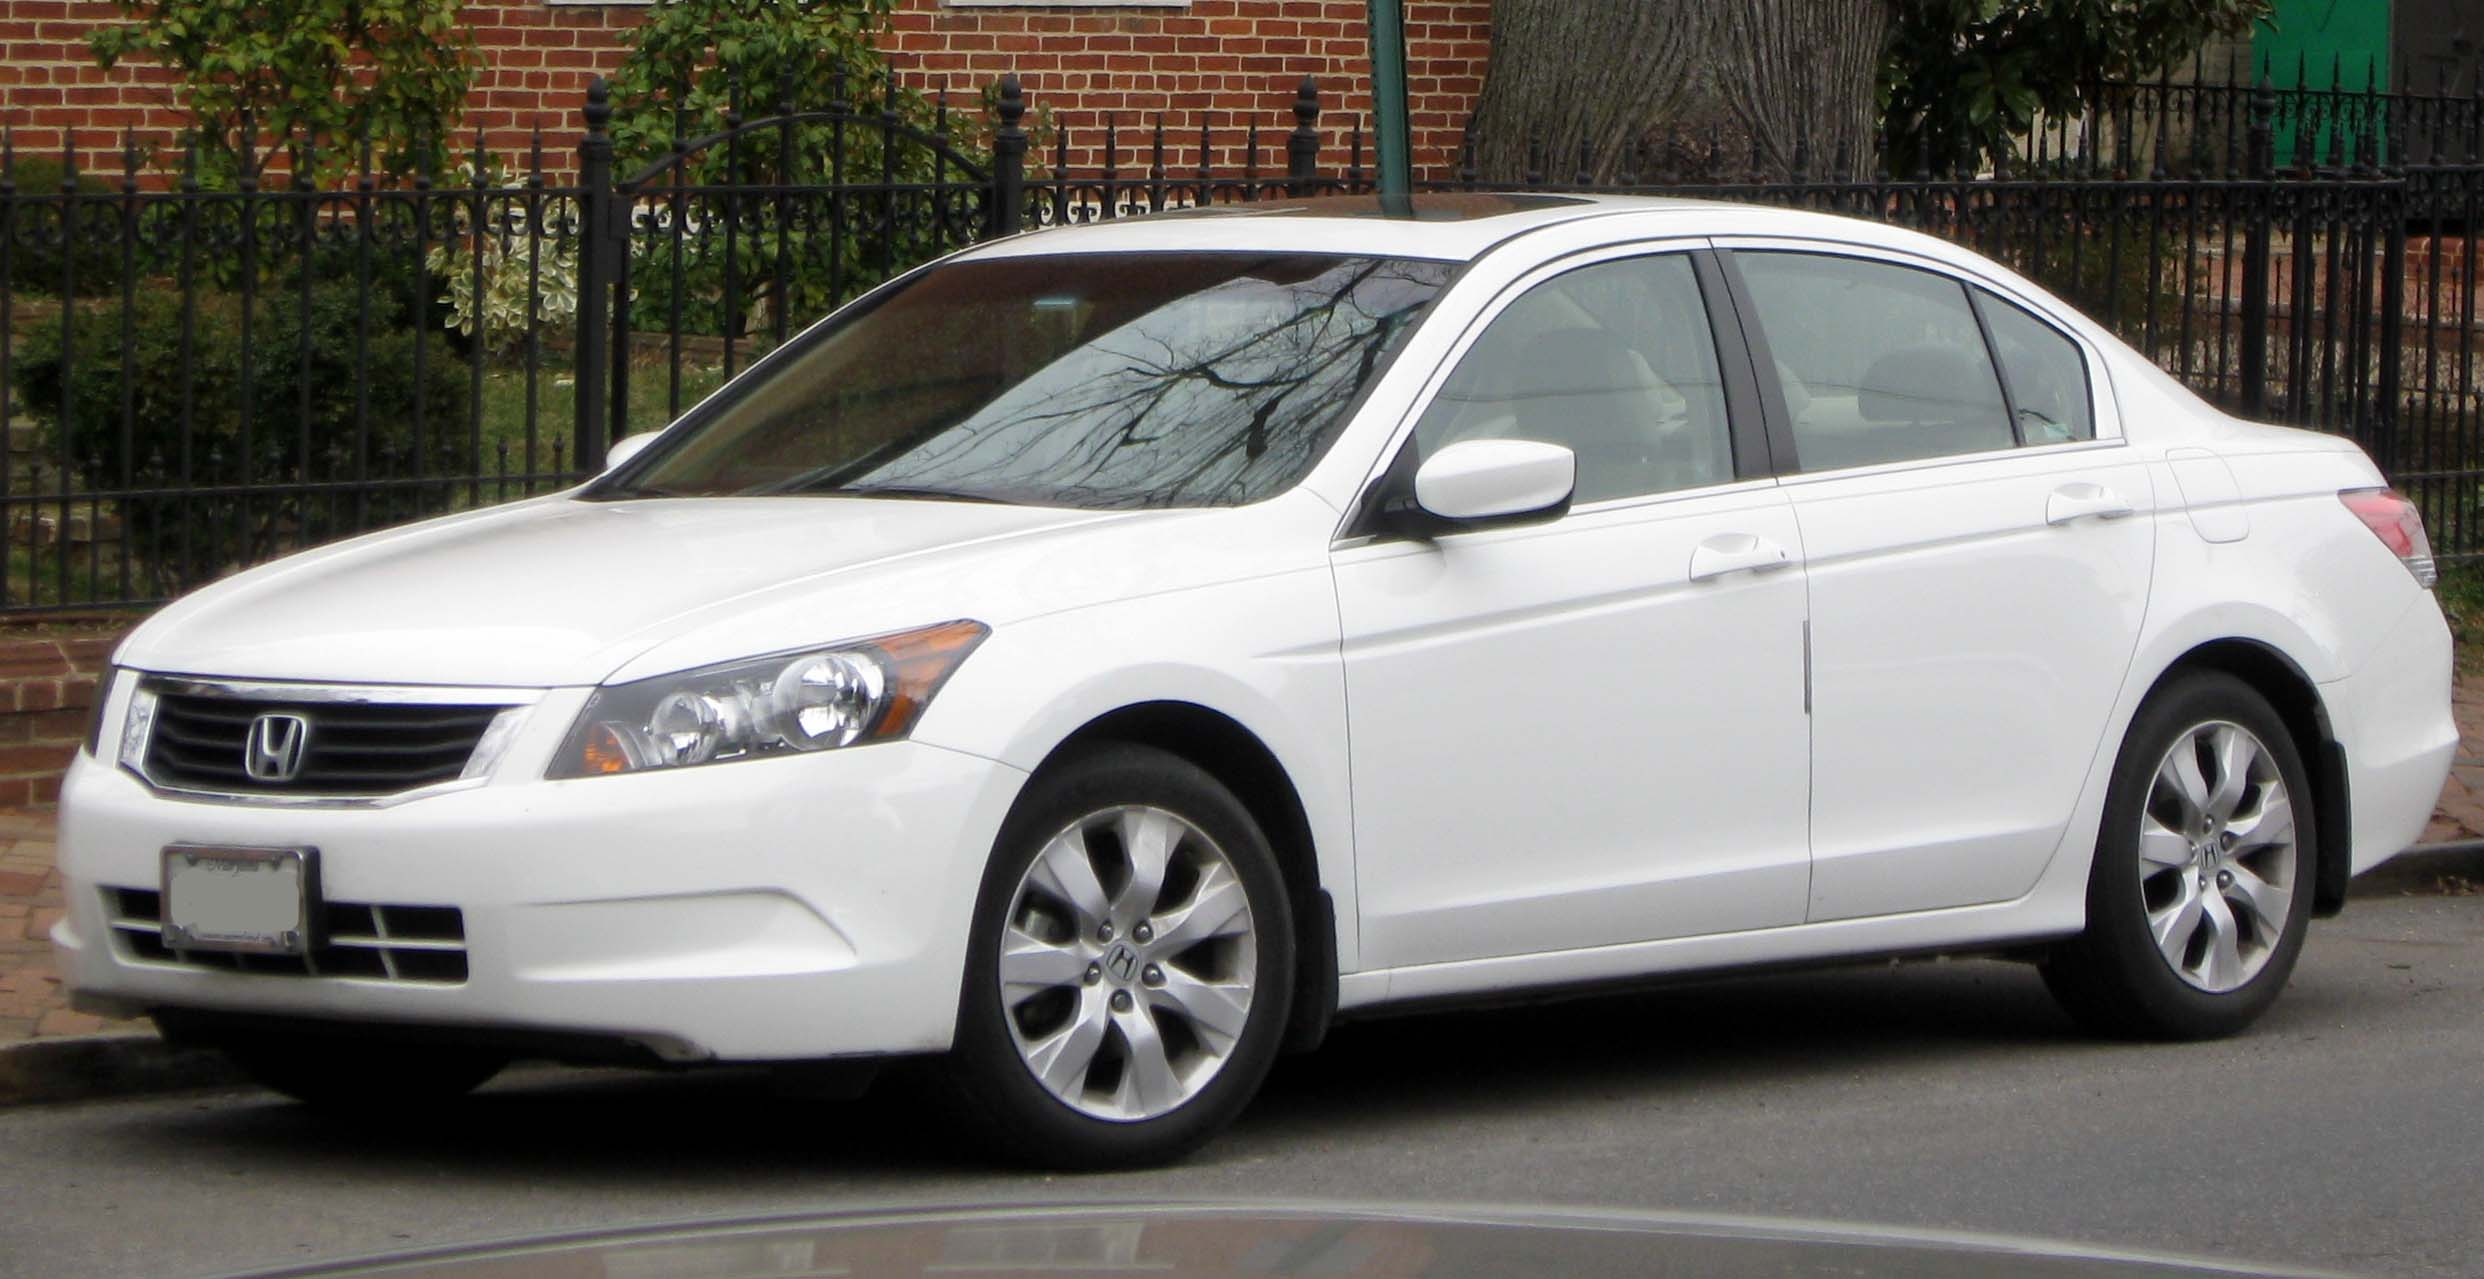 2010 Honda Accord #3